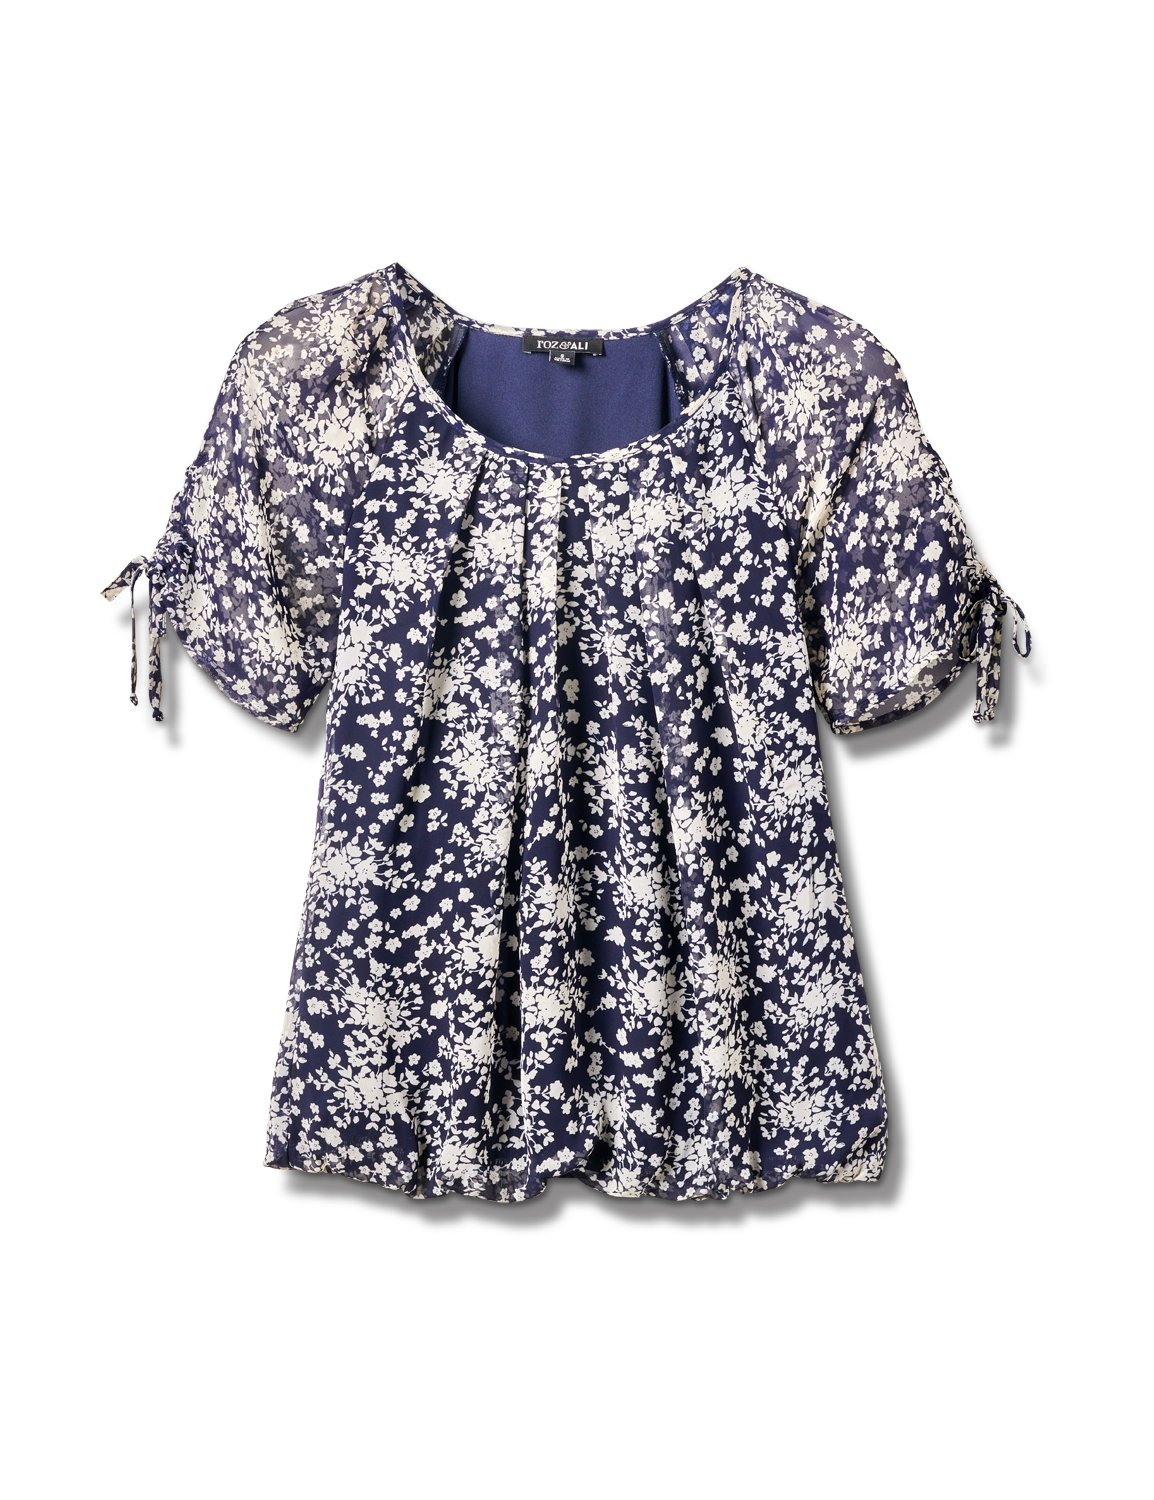 Small Floral Bubble Hem Top - Misses -Navy - Front